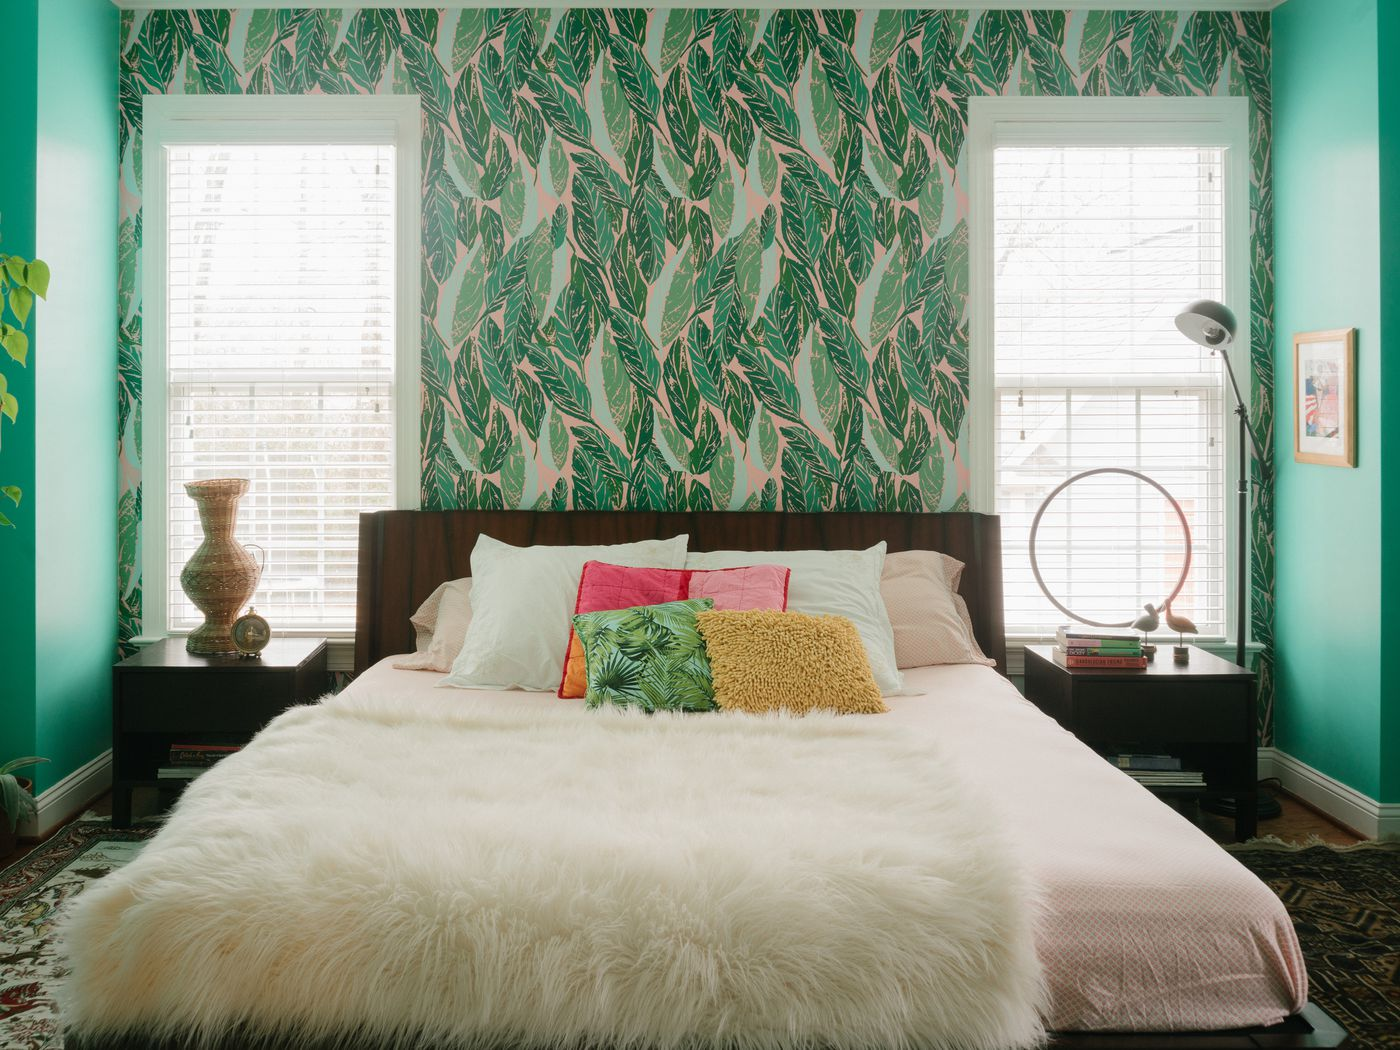 green and gray bedroom. In Design Bloggers Diy Dream House Color And Pattern Reign Curbed  Green For Bedroom icoscg com